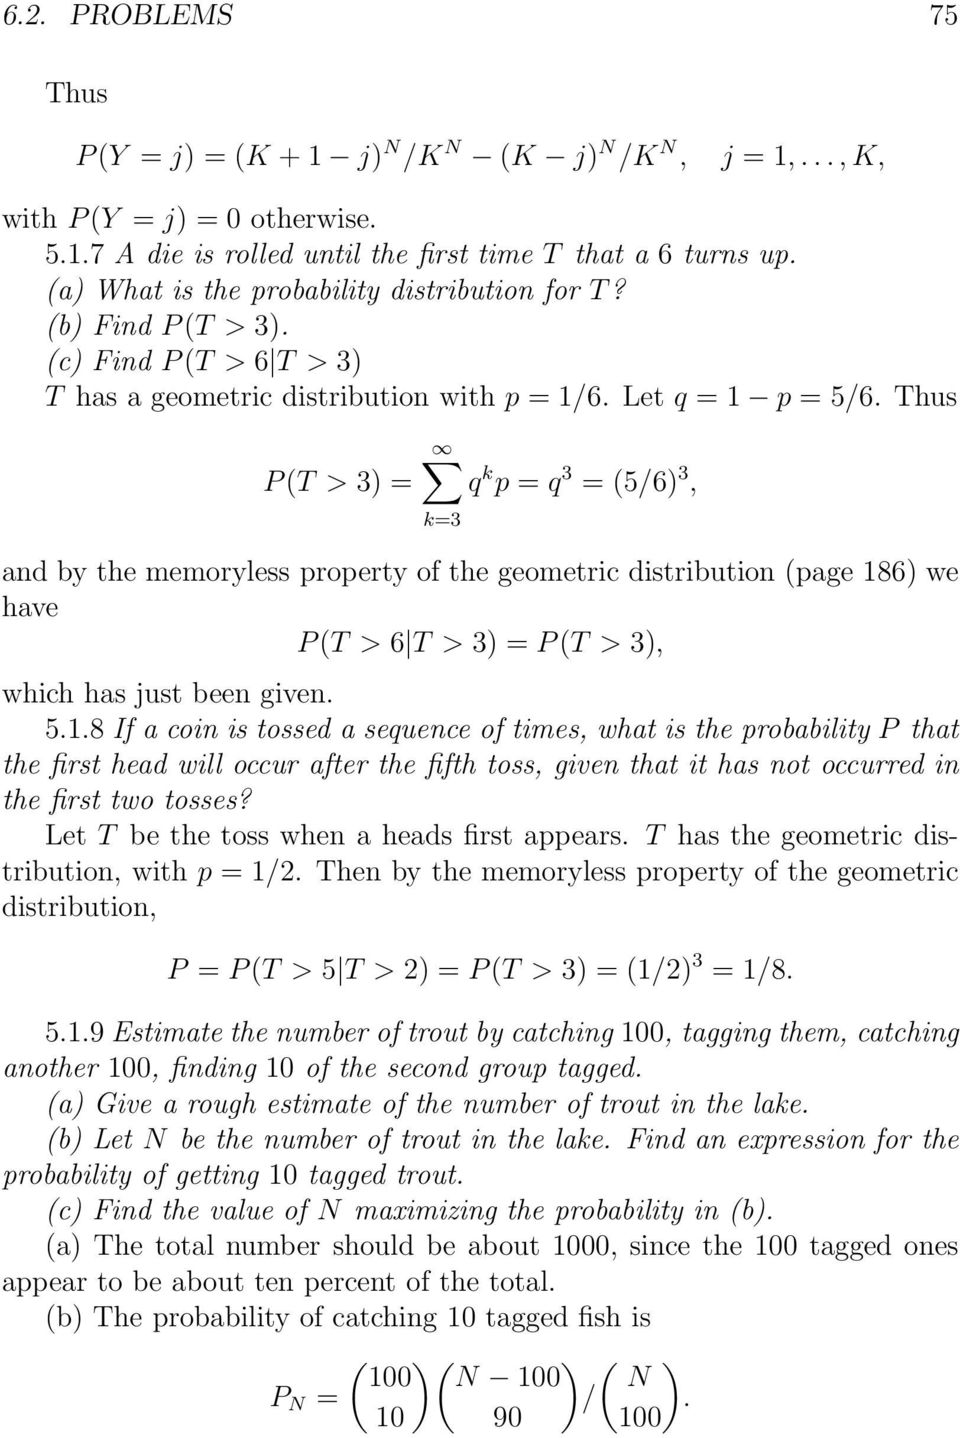 Thus P(T > 3 q k p q 3 (5/6 3, k3 and by the memyless property of the geometric distribution (page 18